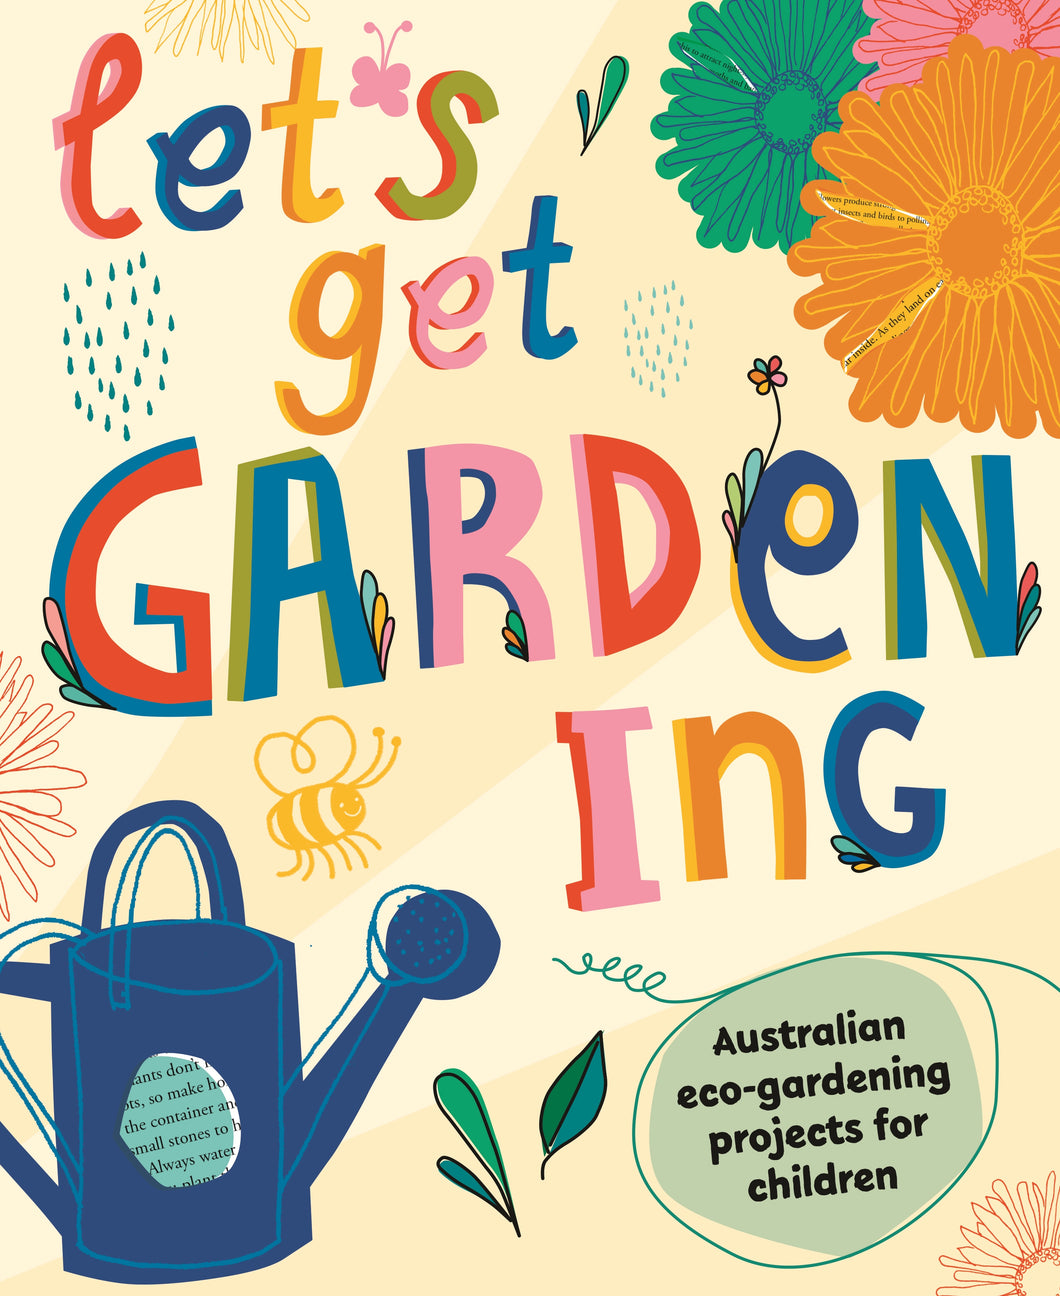 Let's Get Gardening - Australian Eco-gardening Projects for Children